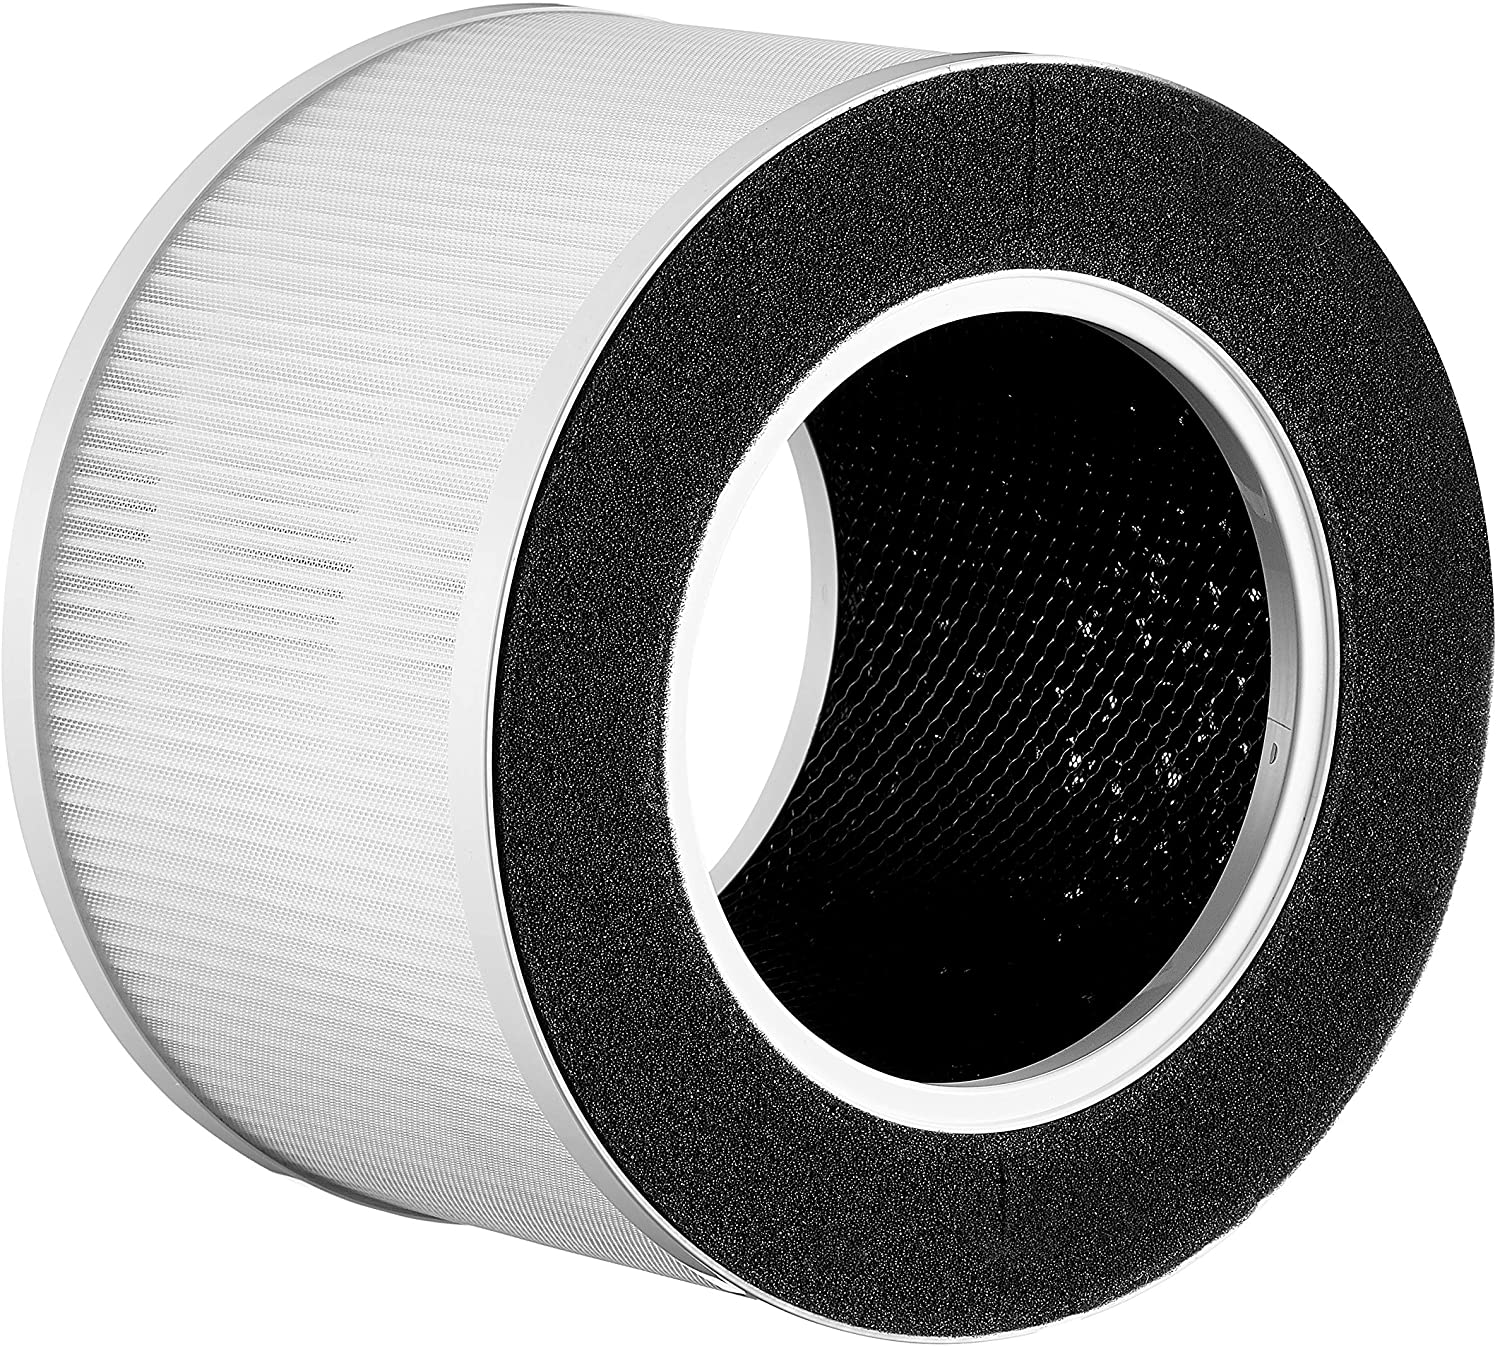 TREDY 4-Stage HEPA Filter Air Purifier TD-1500 Replacement